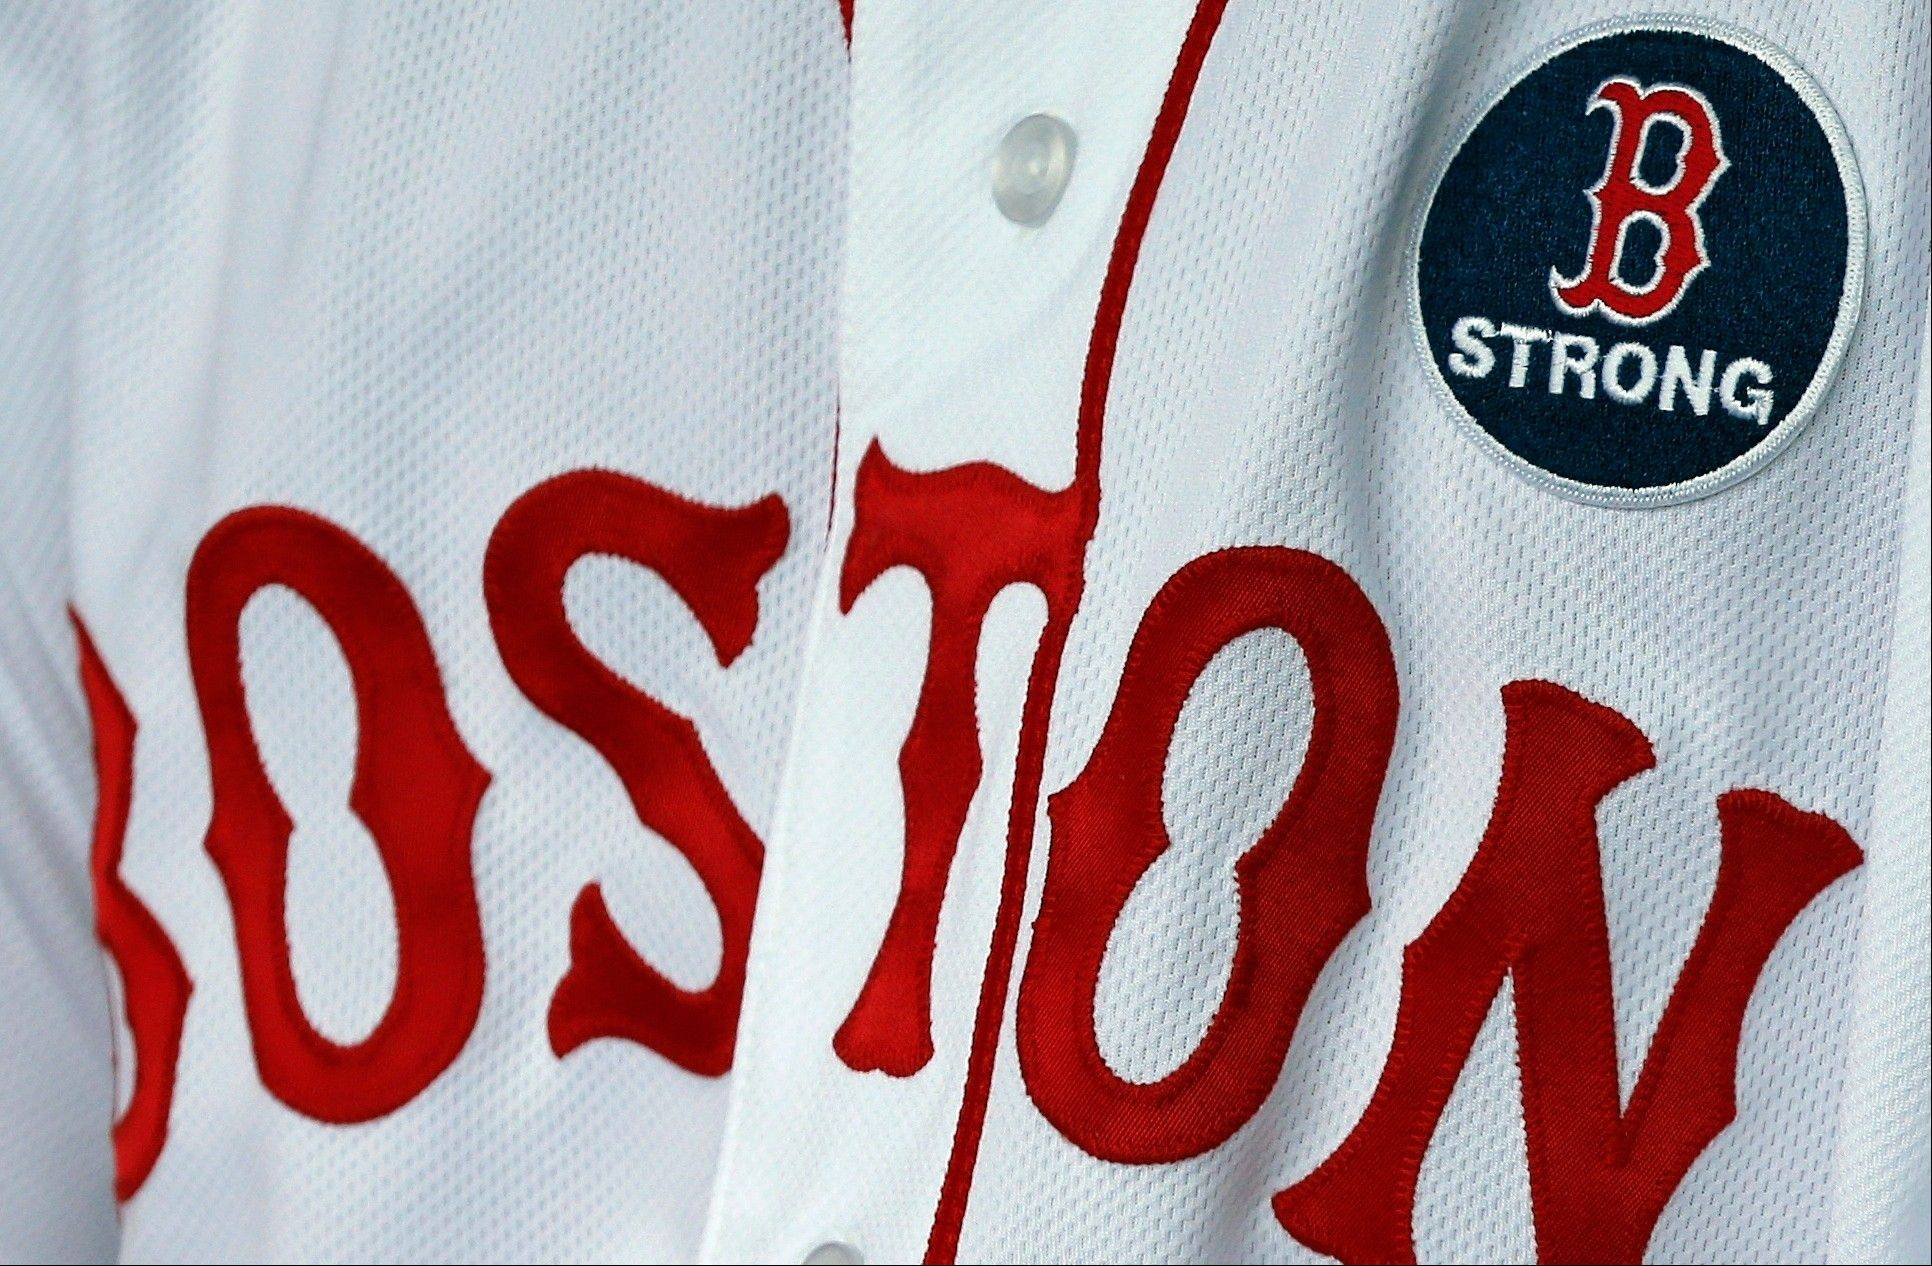 Boston Red Sox's Pedro Ciriaco wears a 'B strong patch during a baseball game between the Boston Red Sox and the Kansas City Royals in Boston, Saturday, April 20, 2013.